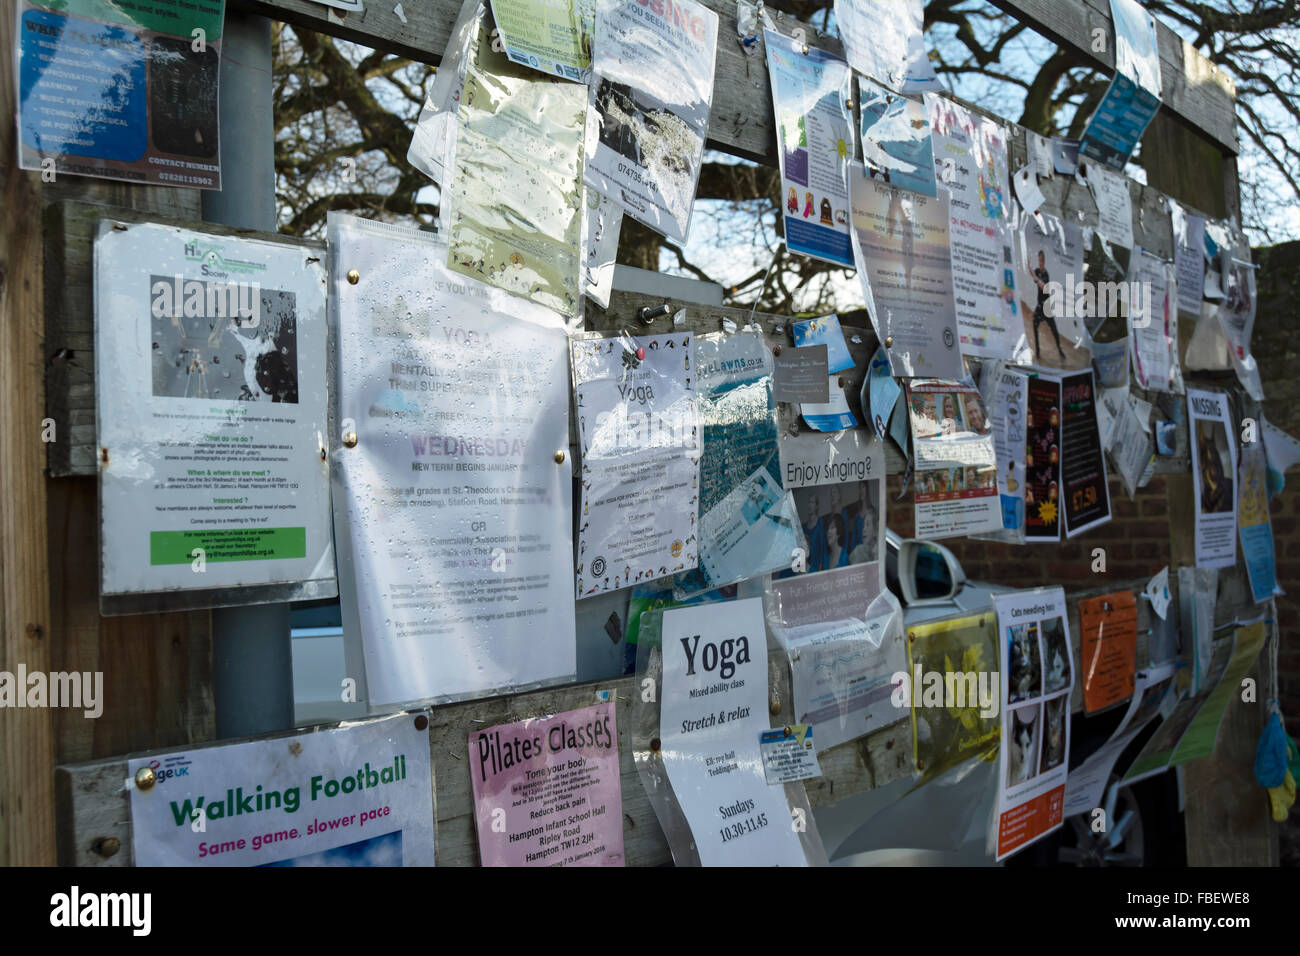 community noticeboard in hampton hill, middlesex, england - Stock Image